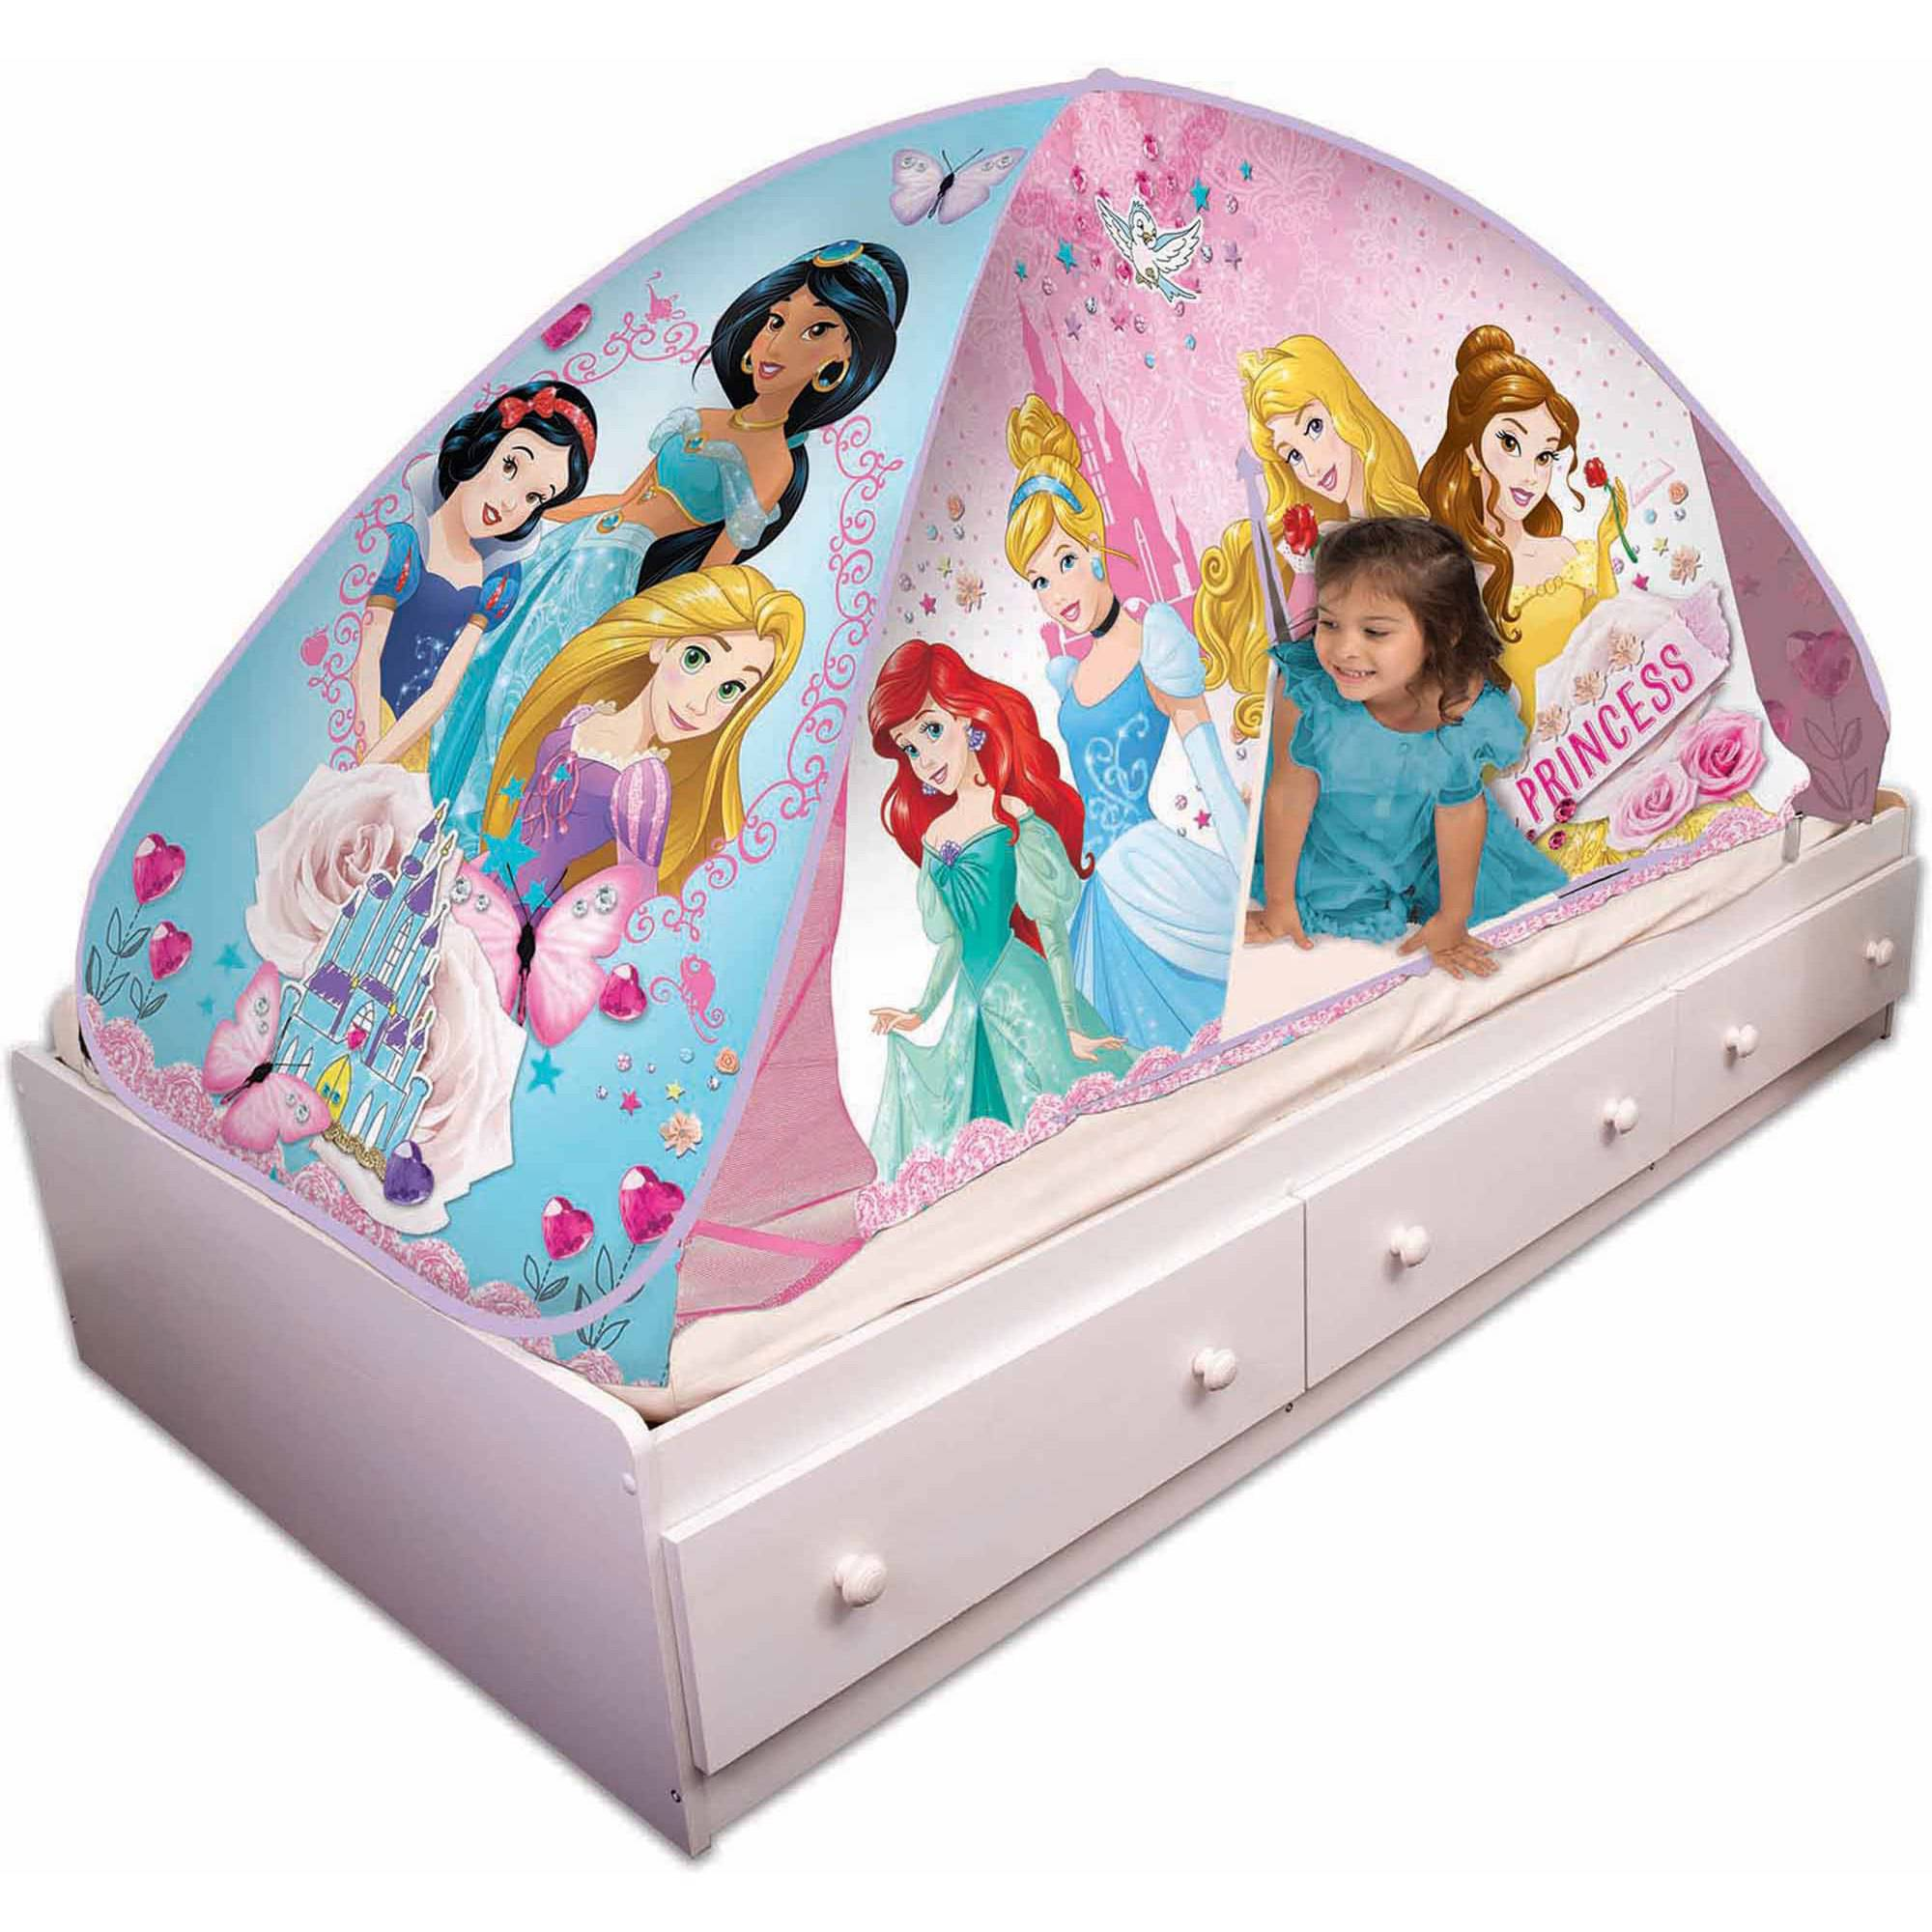 Playhut Disney Princess 2-in-1 Tent